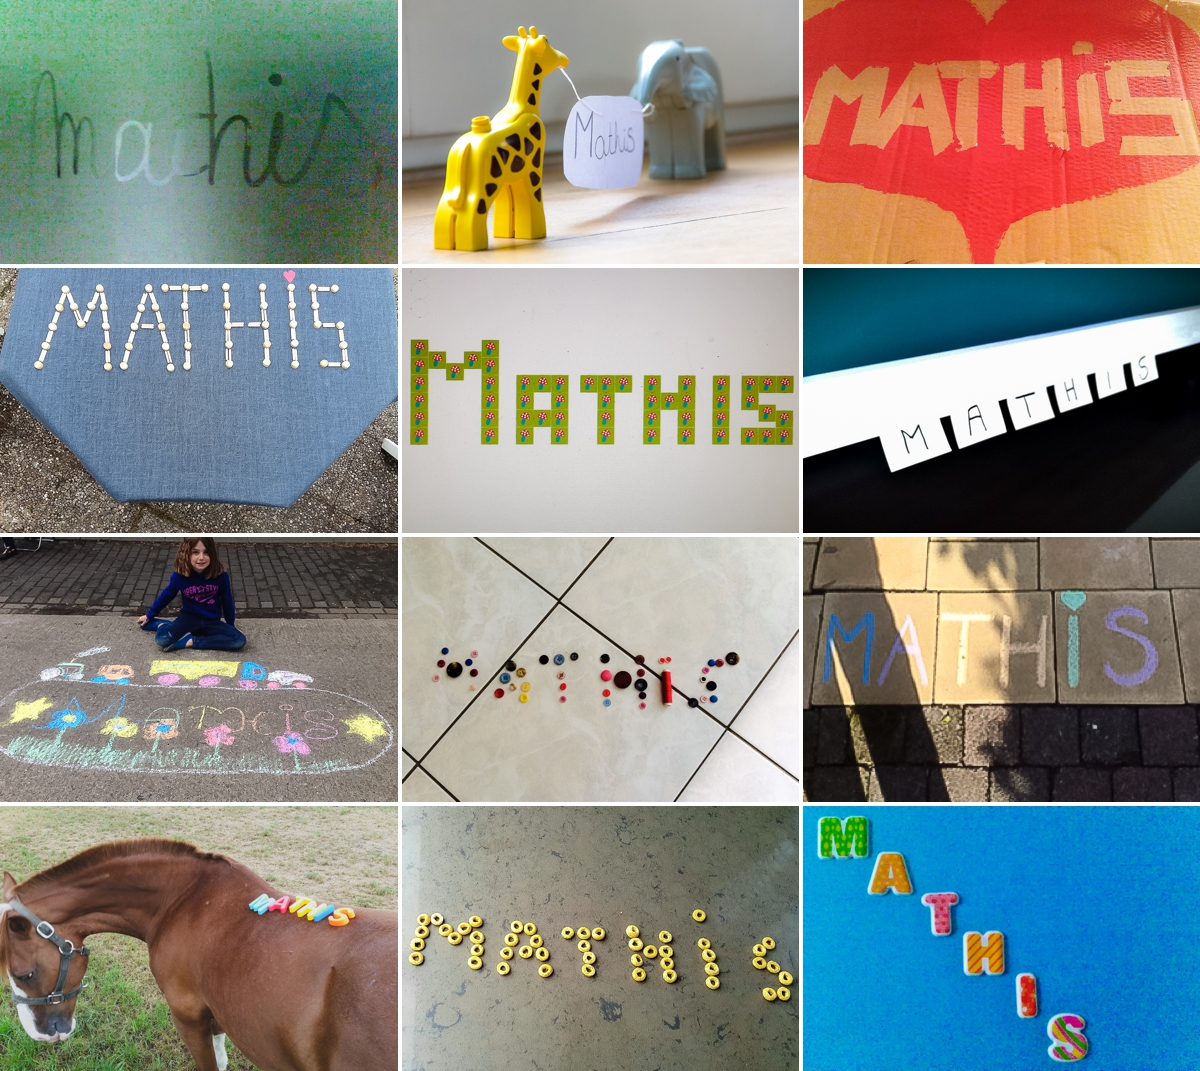 2015 Naamcollage Mathis 6